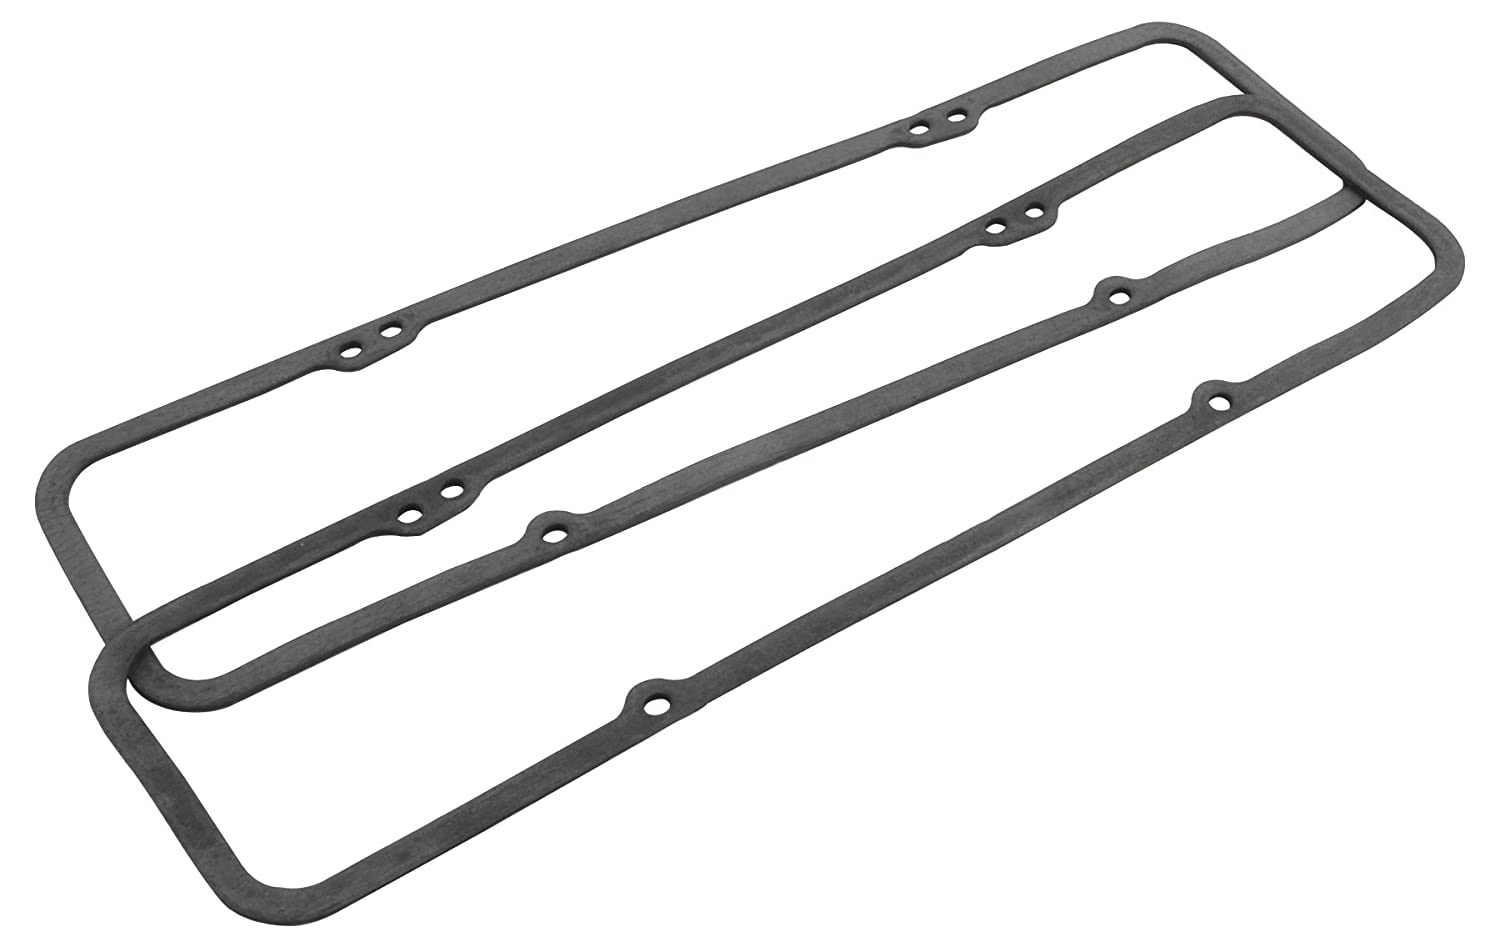 Brodix Cylinder Heads MG1000 Valve Cover Gasket for Small Block Chevy - Pair MG 1000